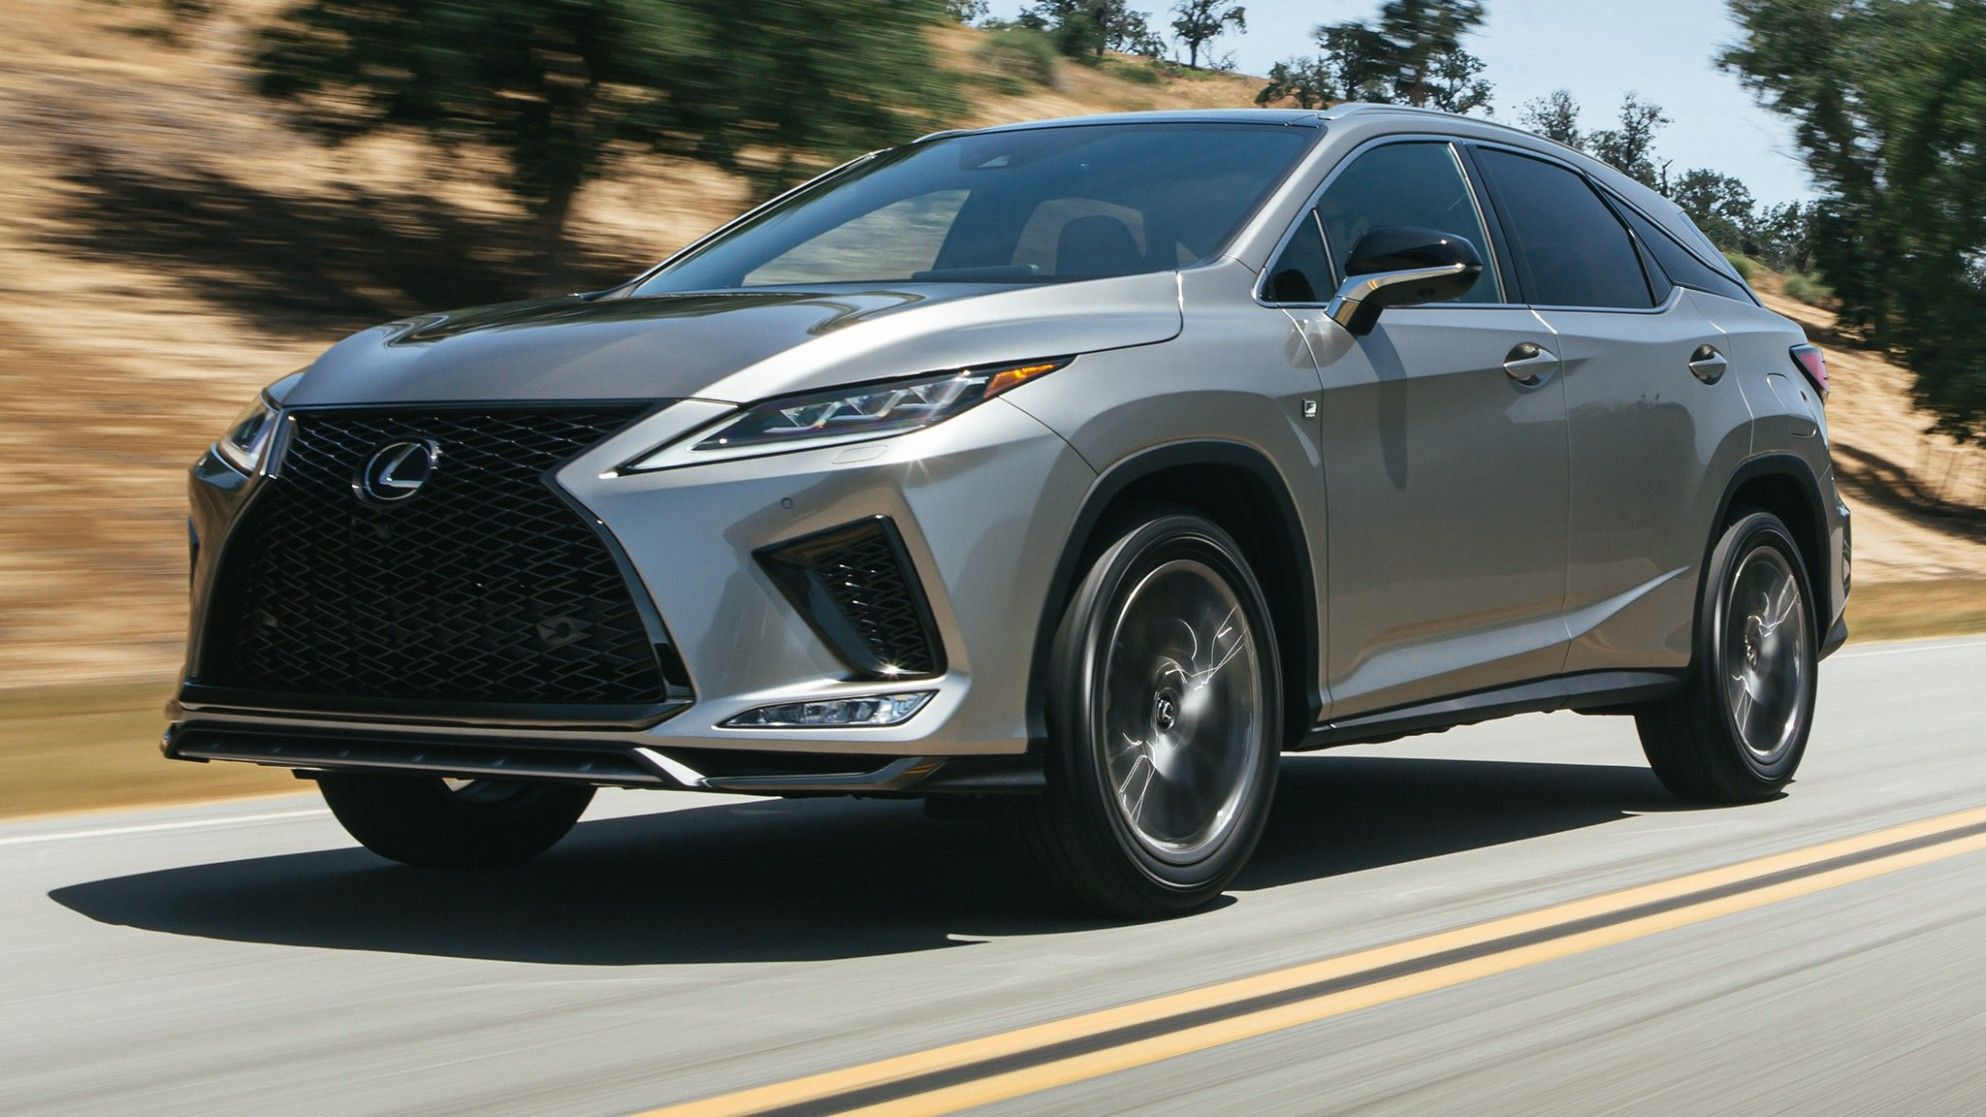 2021 Lexus Rx 350 F Sport Suv Design Is So Famous But Why